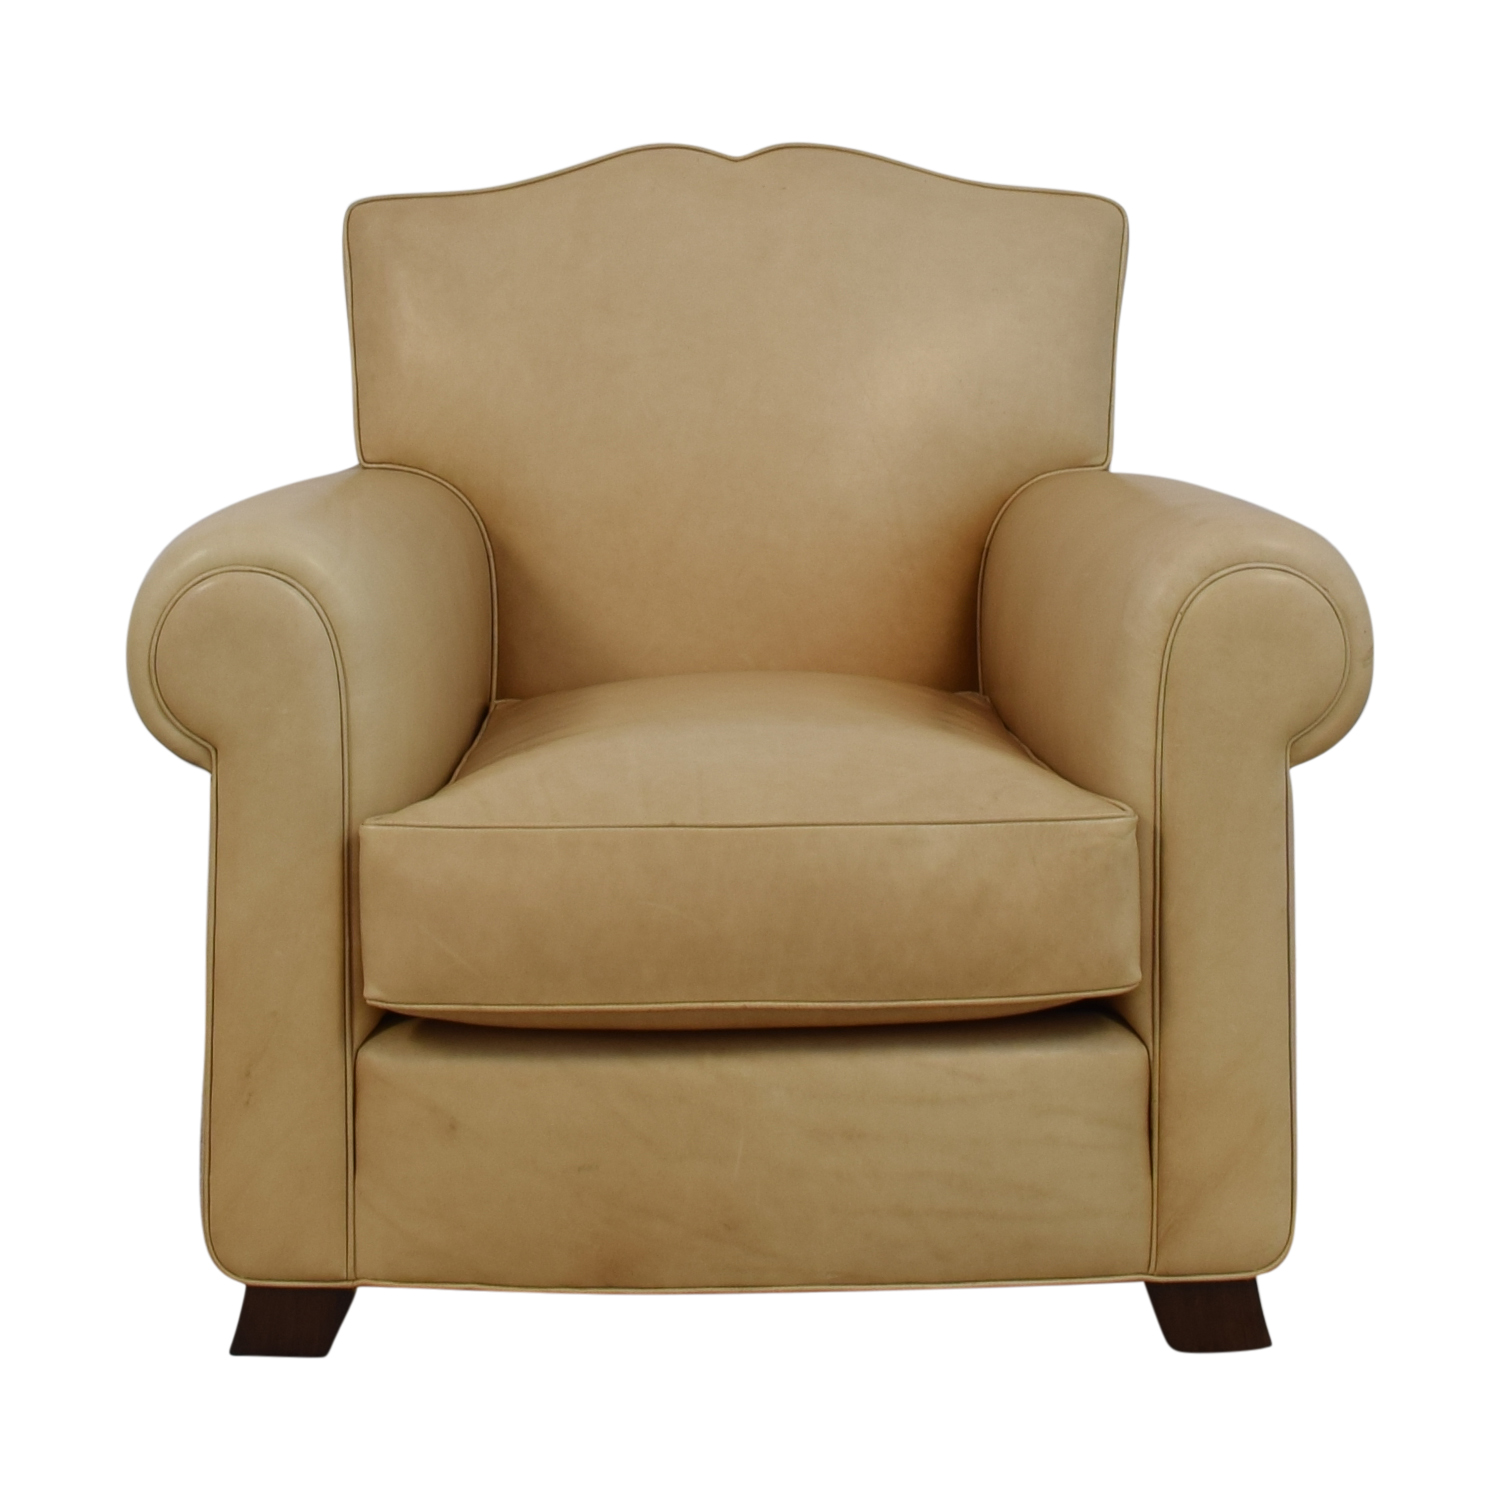 Furniture Masters Furniture Masters Neutral Club Chair coupon